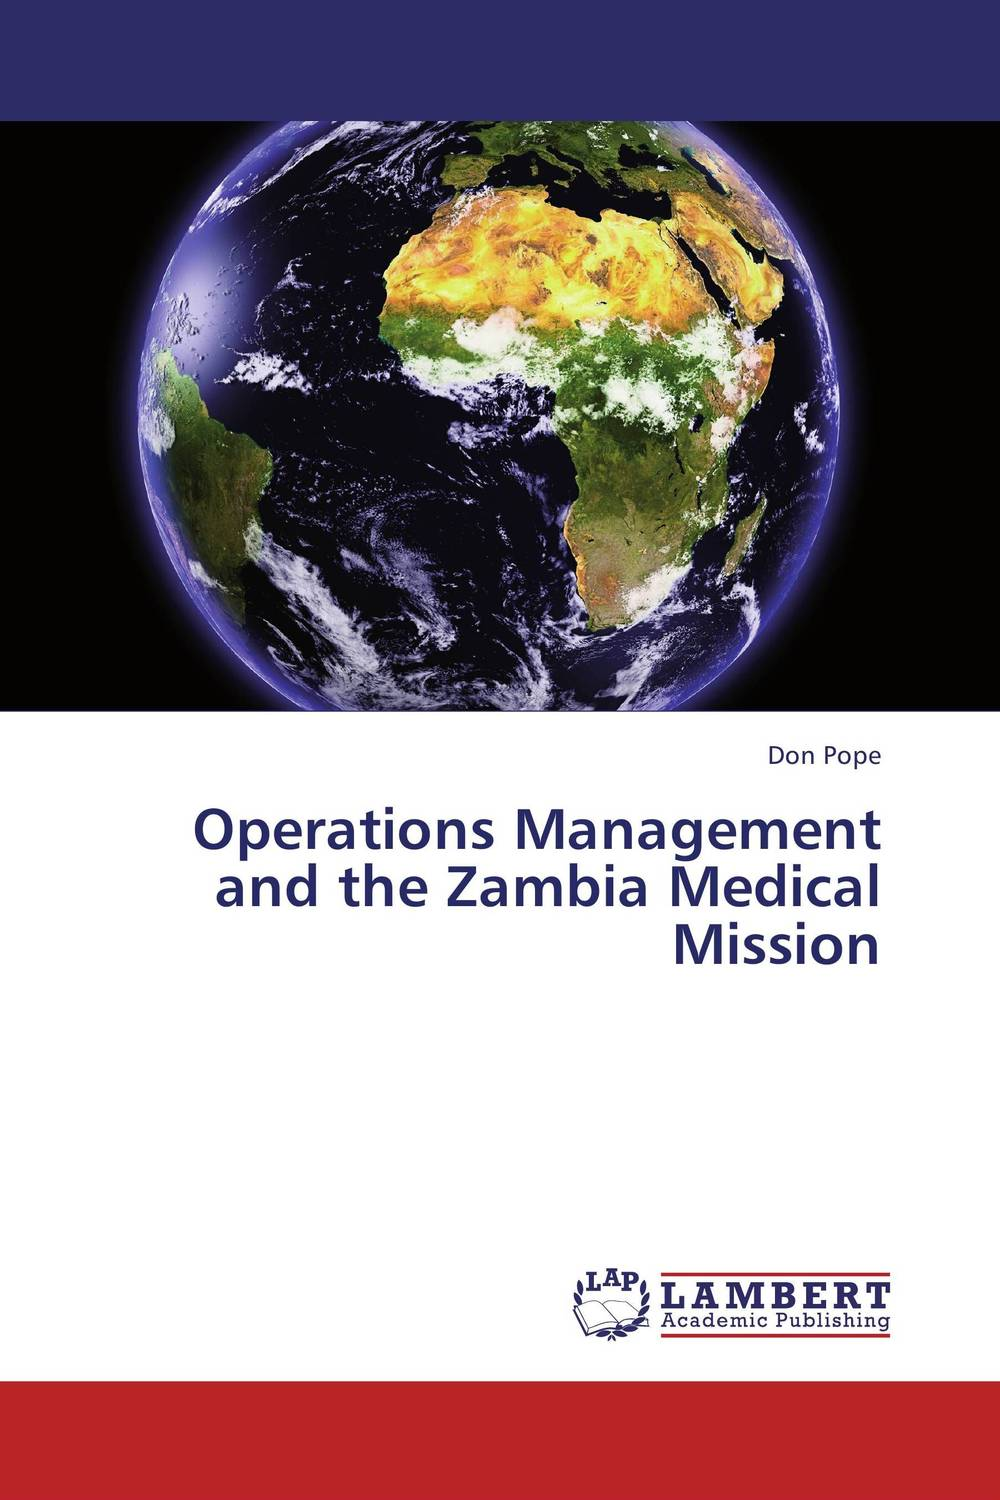 Operations Management and the Zambia Medical Mission strategic planning and management in contemporary zambia